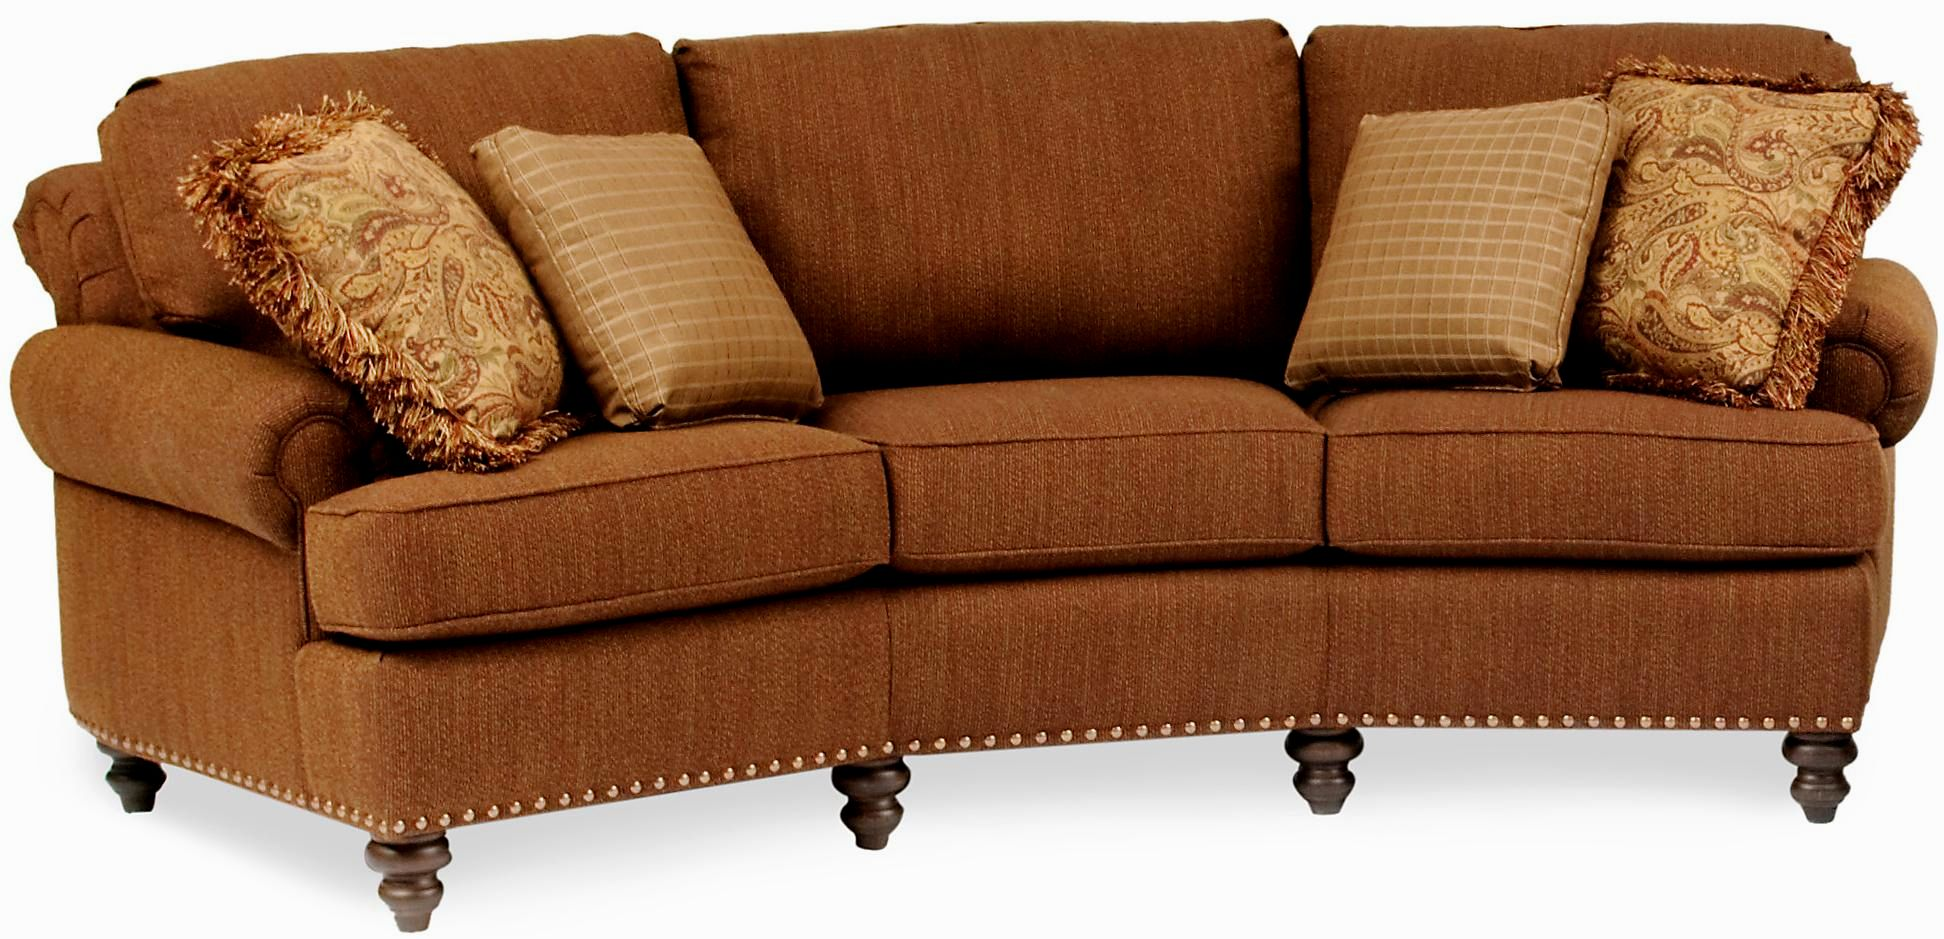 stylish sofa for sale plan-Modern sofa for Sale Wallpaper